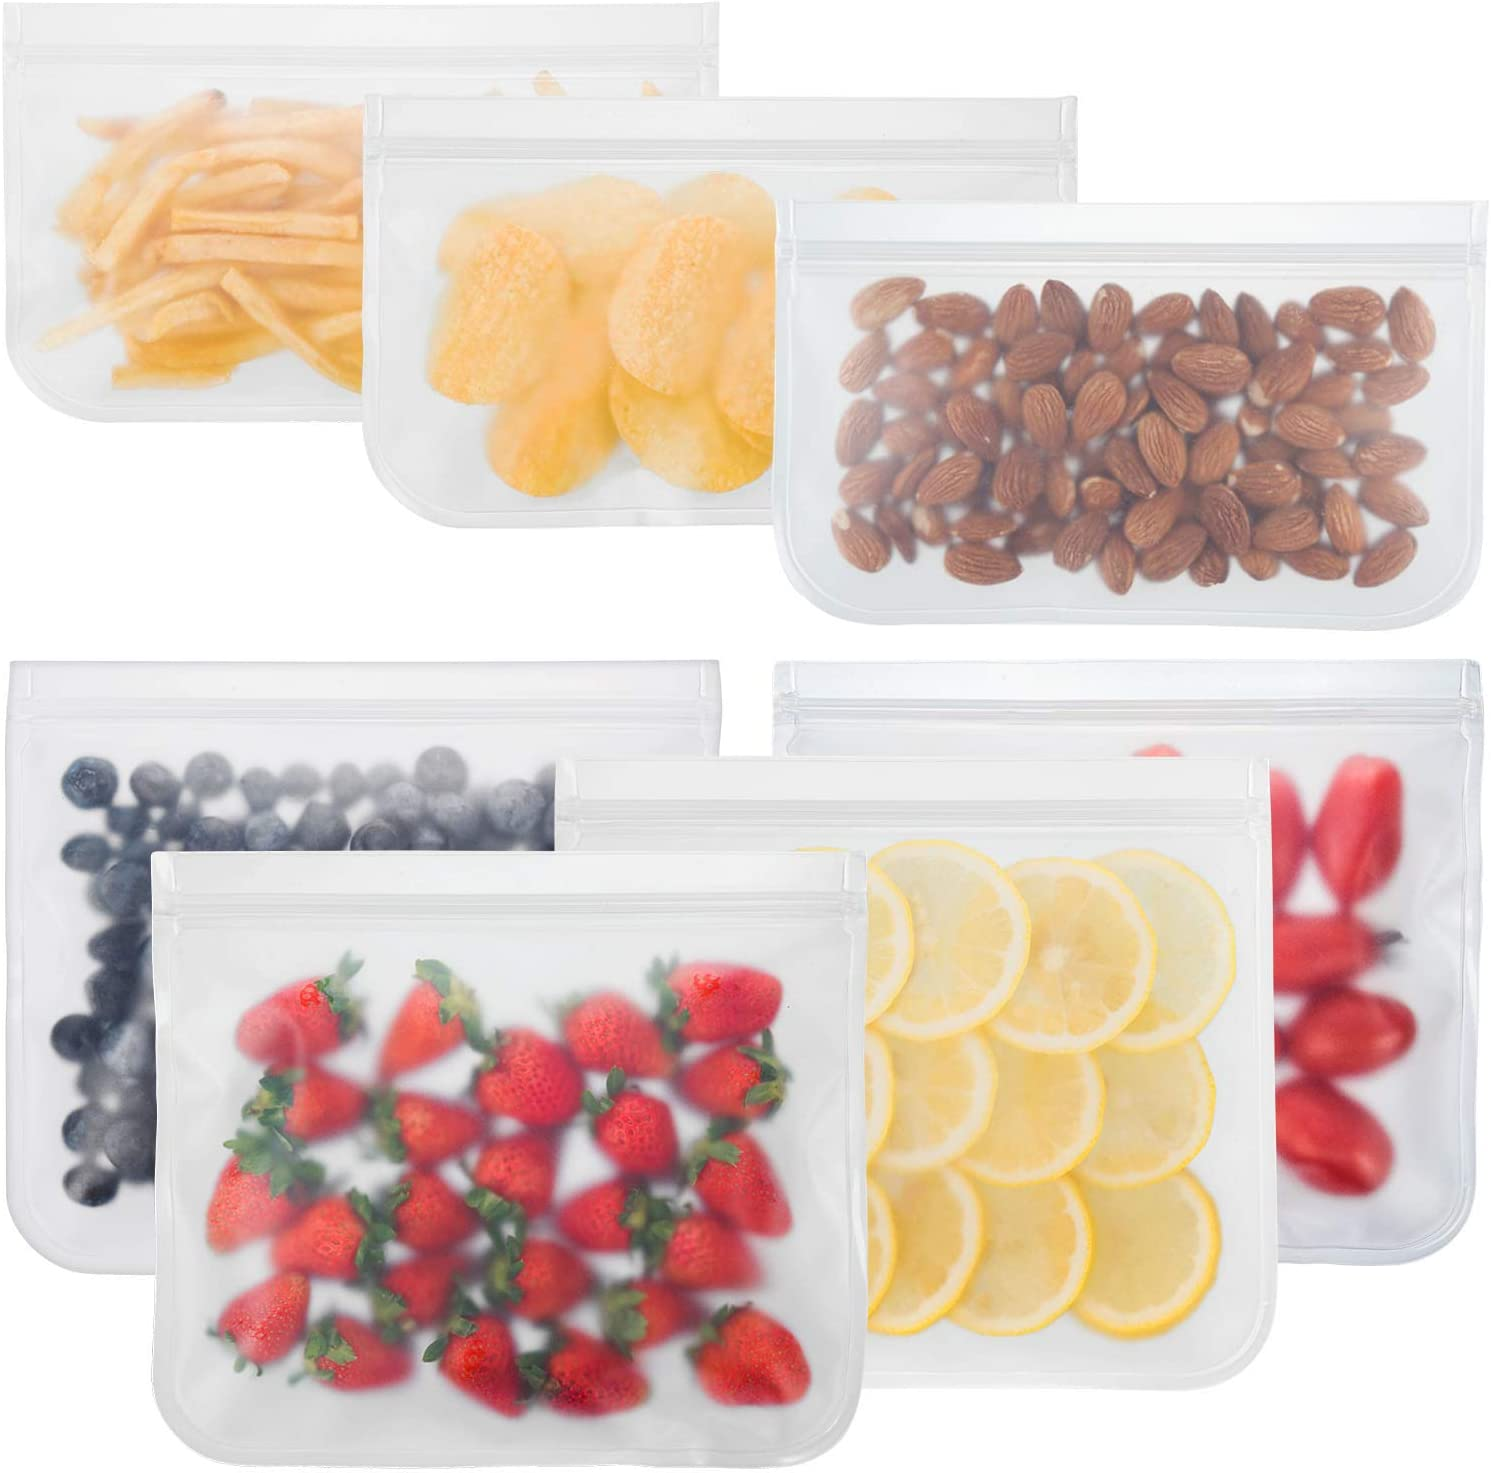 Bayco Reusable Storage Bags (7 Pack) Lunch Sandwich Bags & Small Kids Snack Bags For Food, EXTRA THICK Reusable Food Storage Bags, Reusable Freezer Bags, Reusable Ziplock Bags, BPA FREE